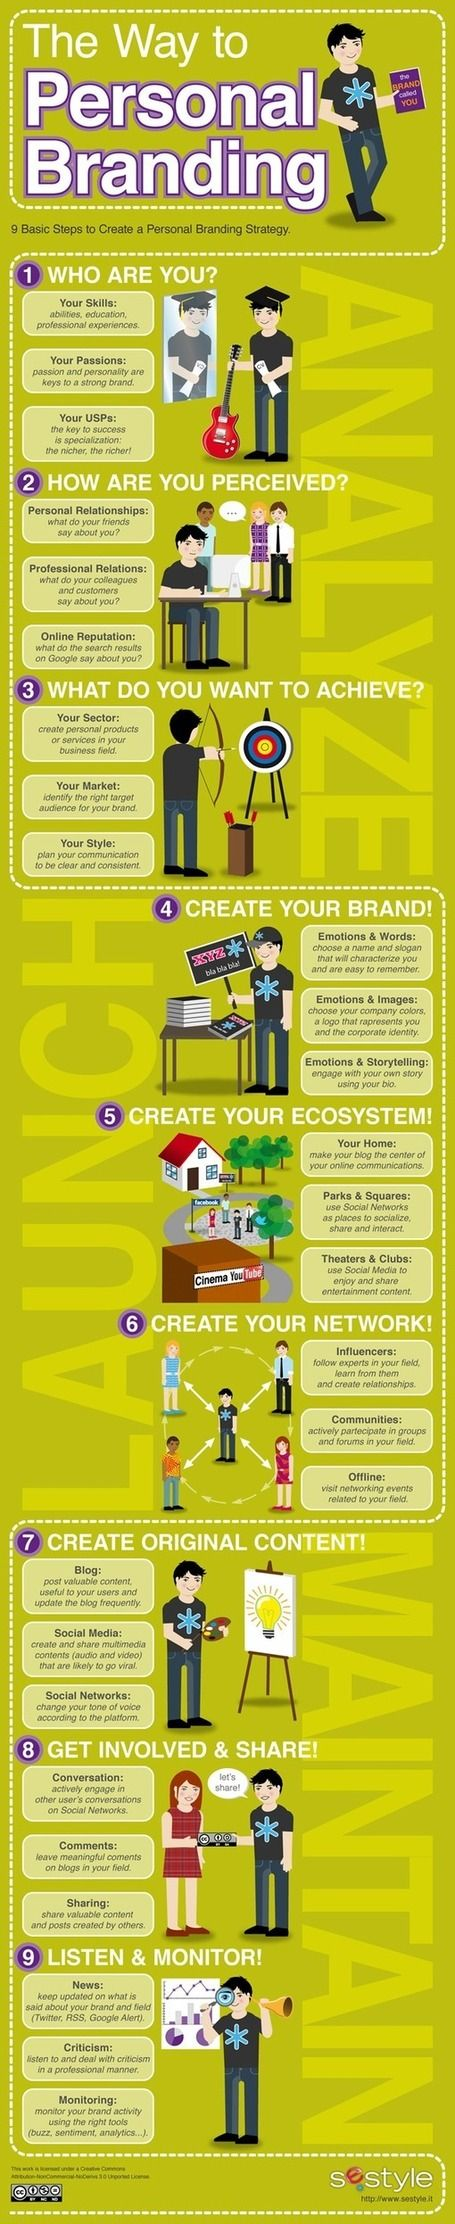 The Way to Personal Branding | #Infographics repinned by @Piktochart